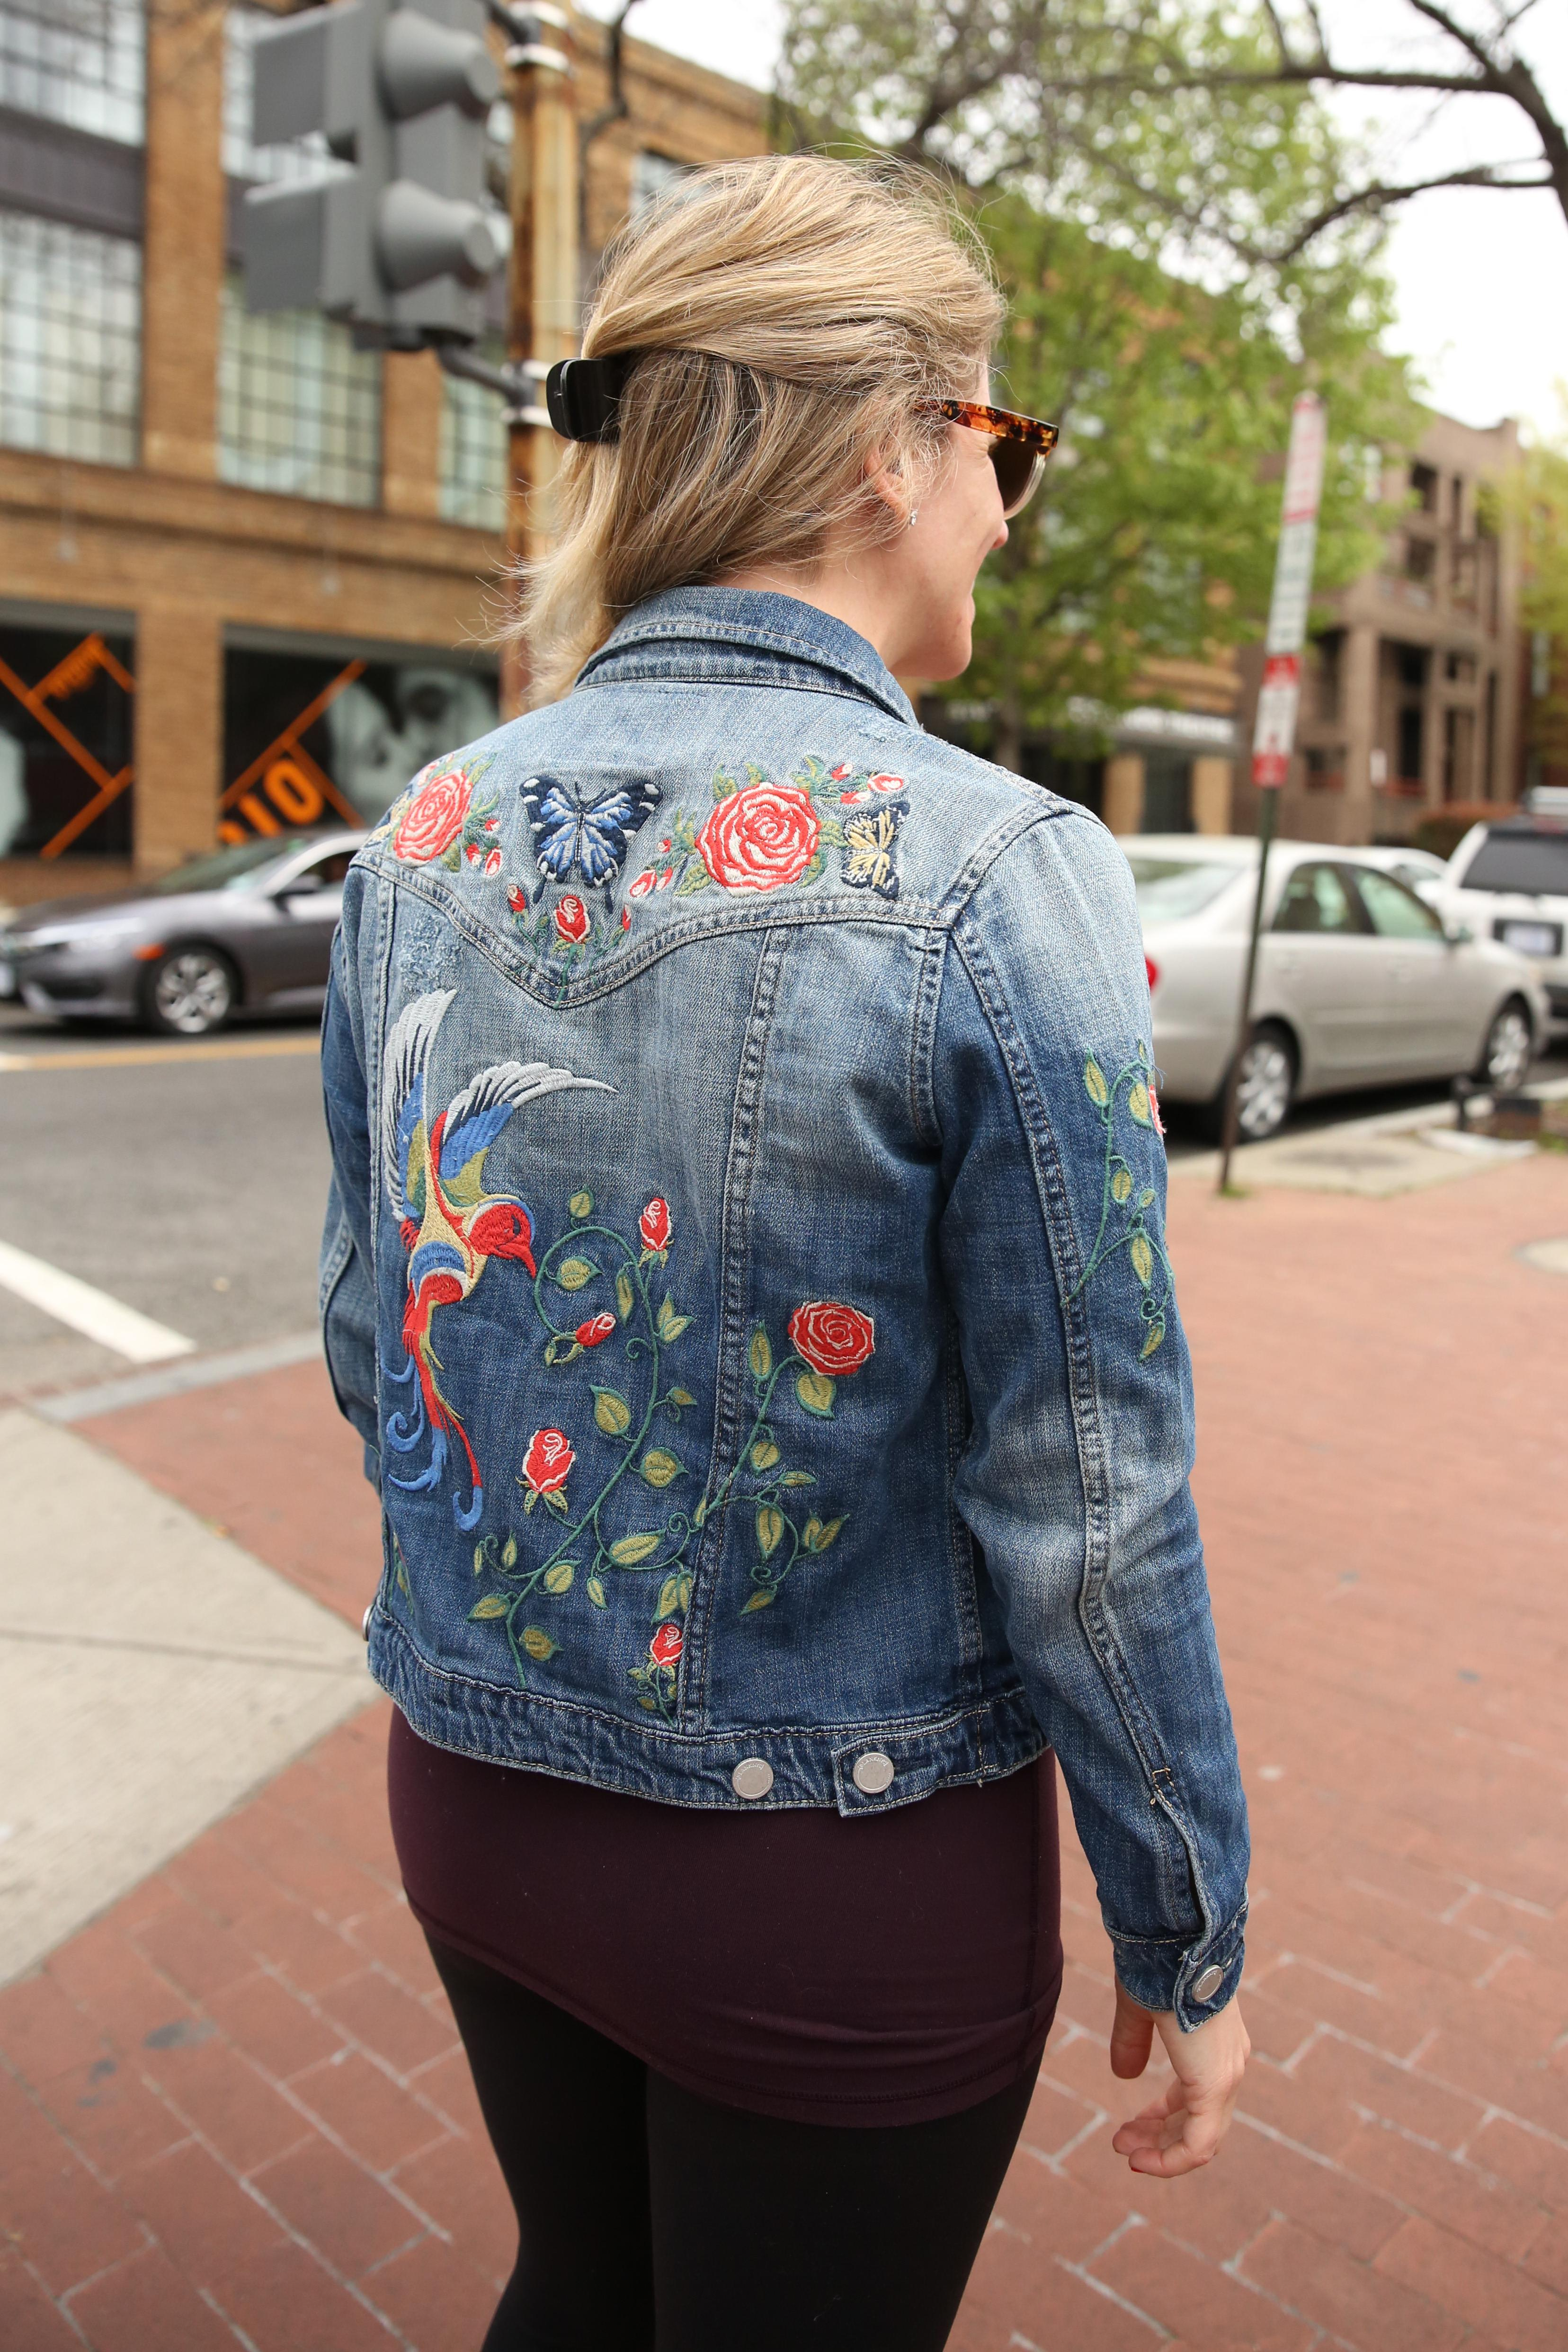 Jamie Geller's embroidered jacket is a great way to embrace a floral without being overbearing.  (Amanda Andrade-Rhoades/DC Refined)